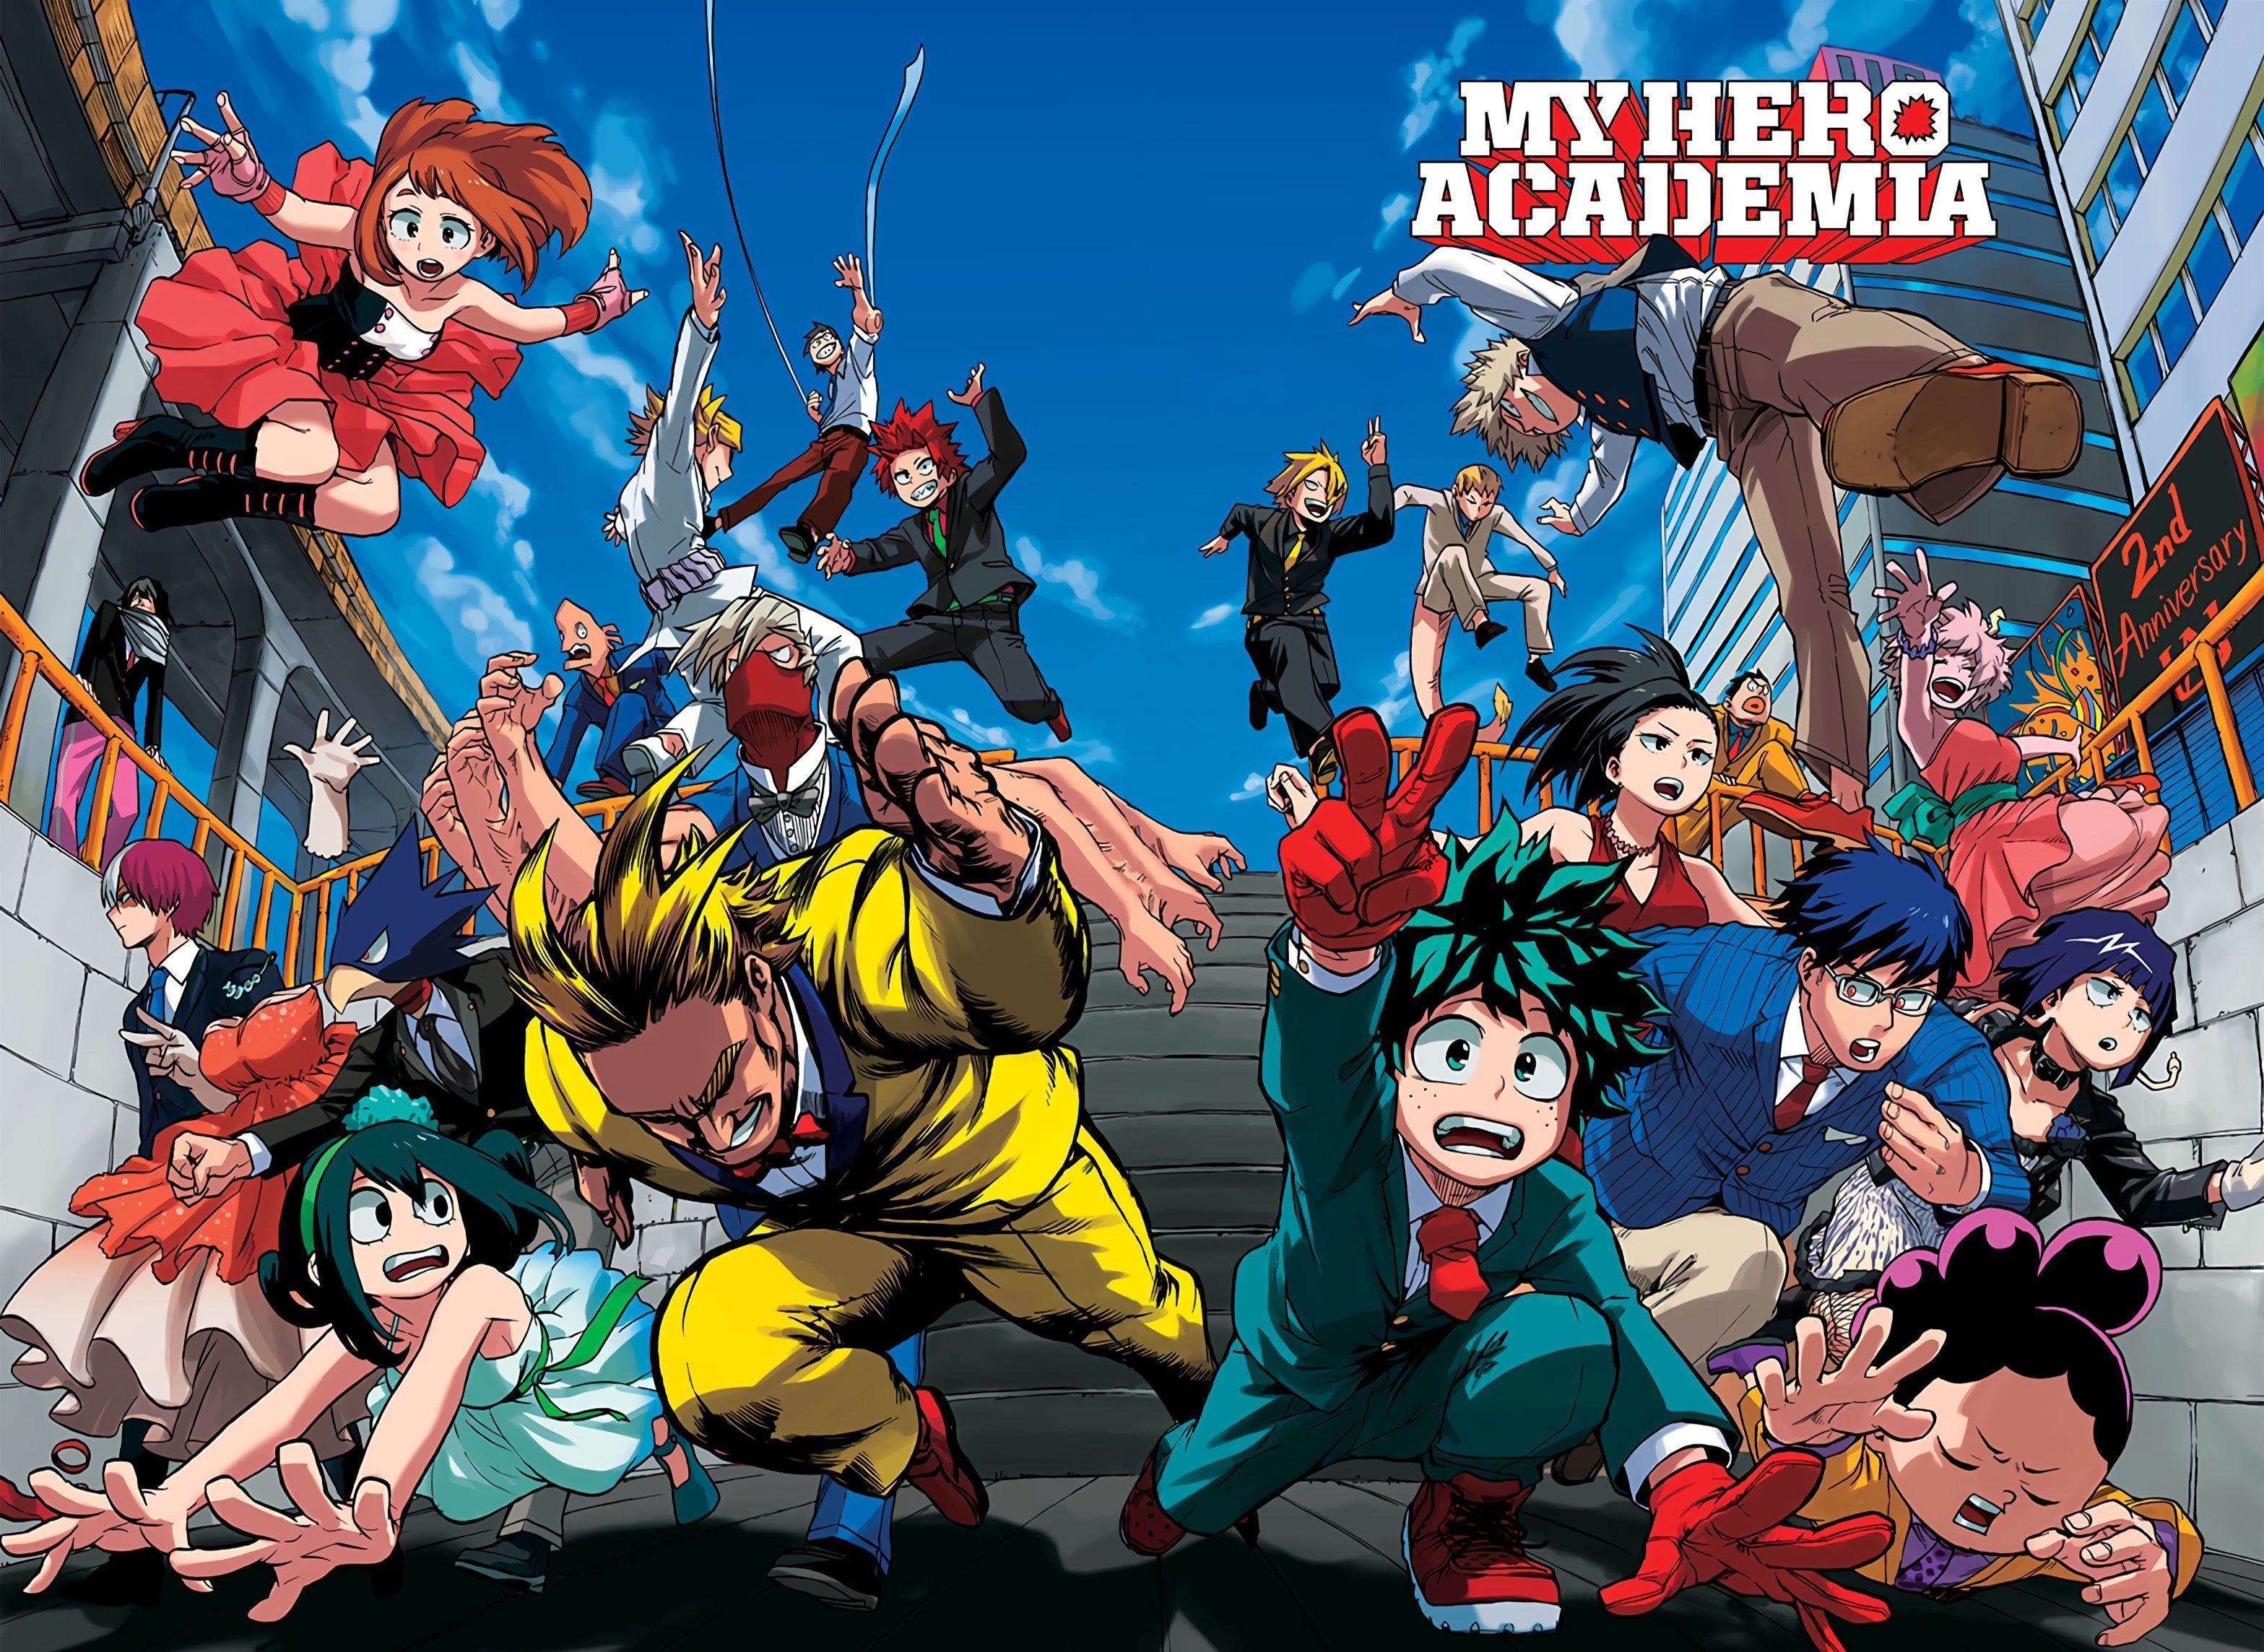 My Hero Academia Season 4 Wallpapers   Top My Hero Academia 3135x2288